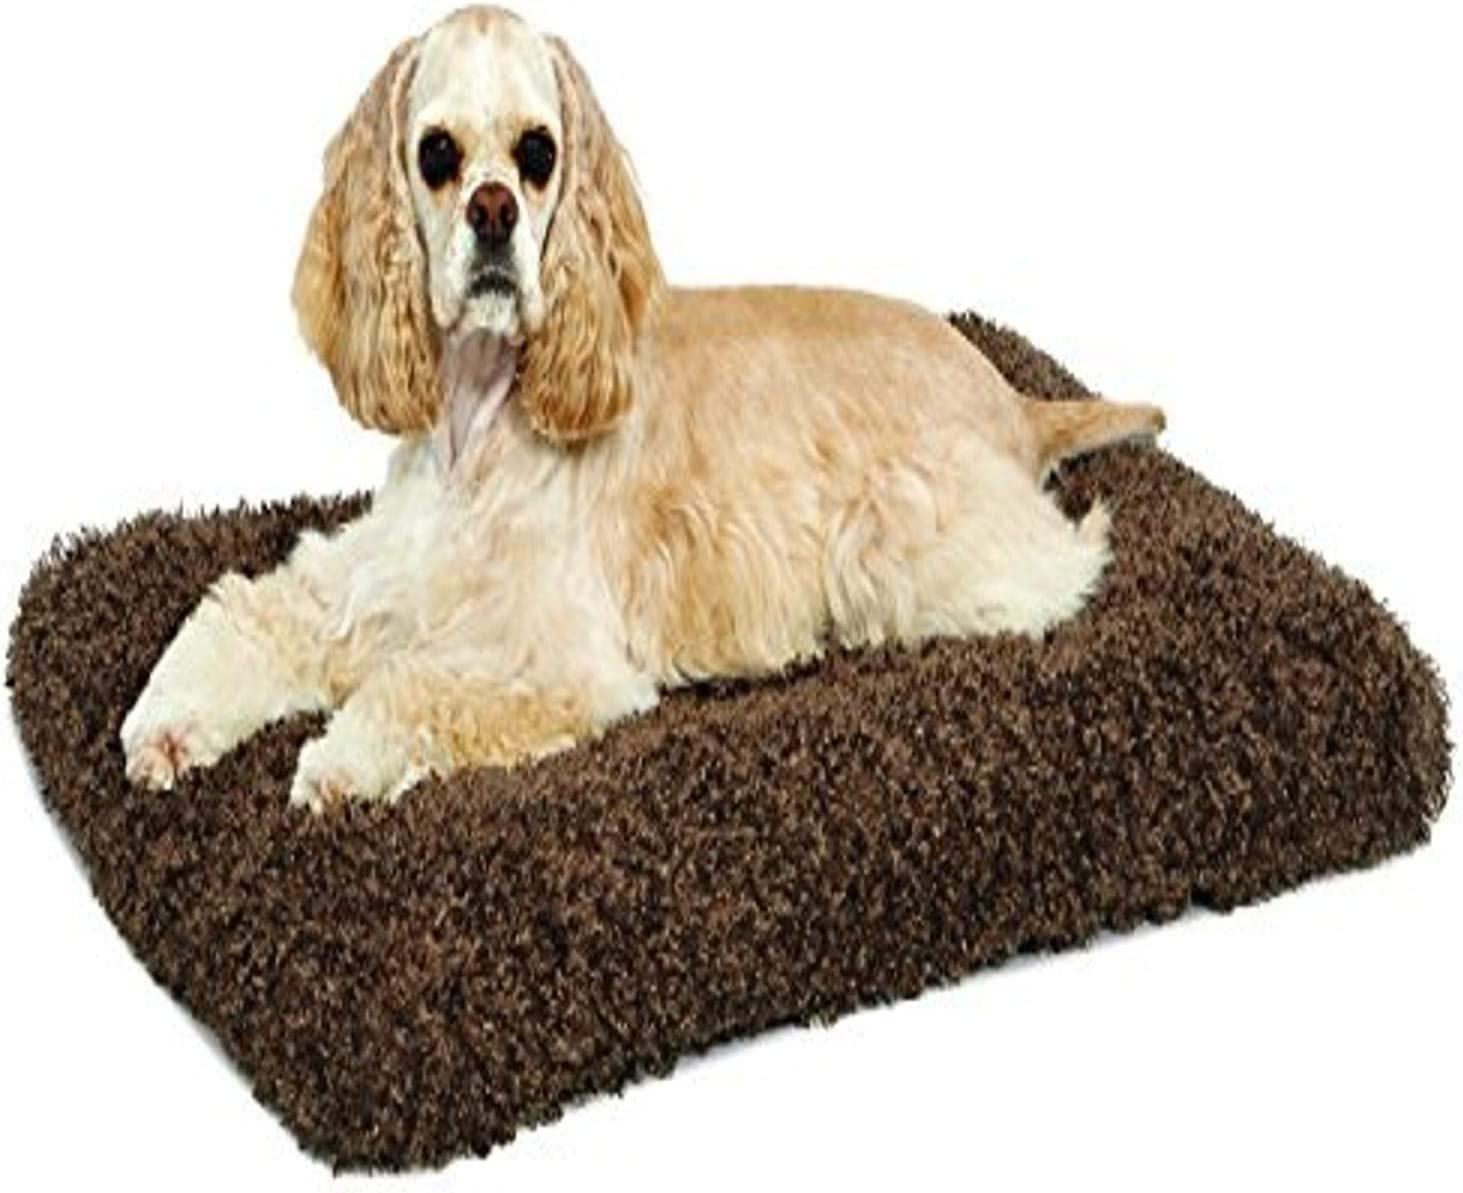 MidWest Homes for Pets Deluxe Super Plush Pet Beds, Machine Wash & Dryer Friendly, 1-Year Warranty